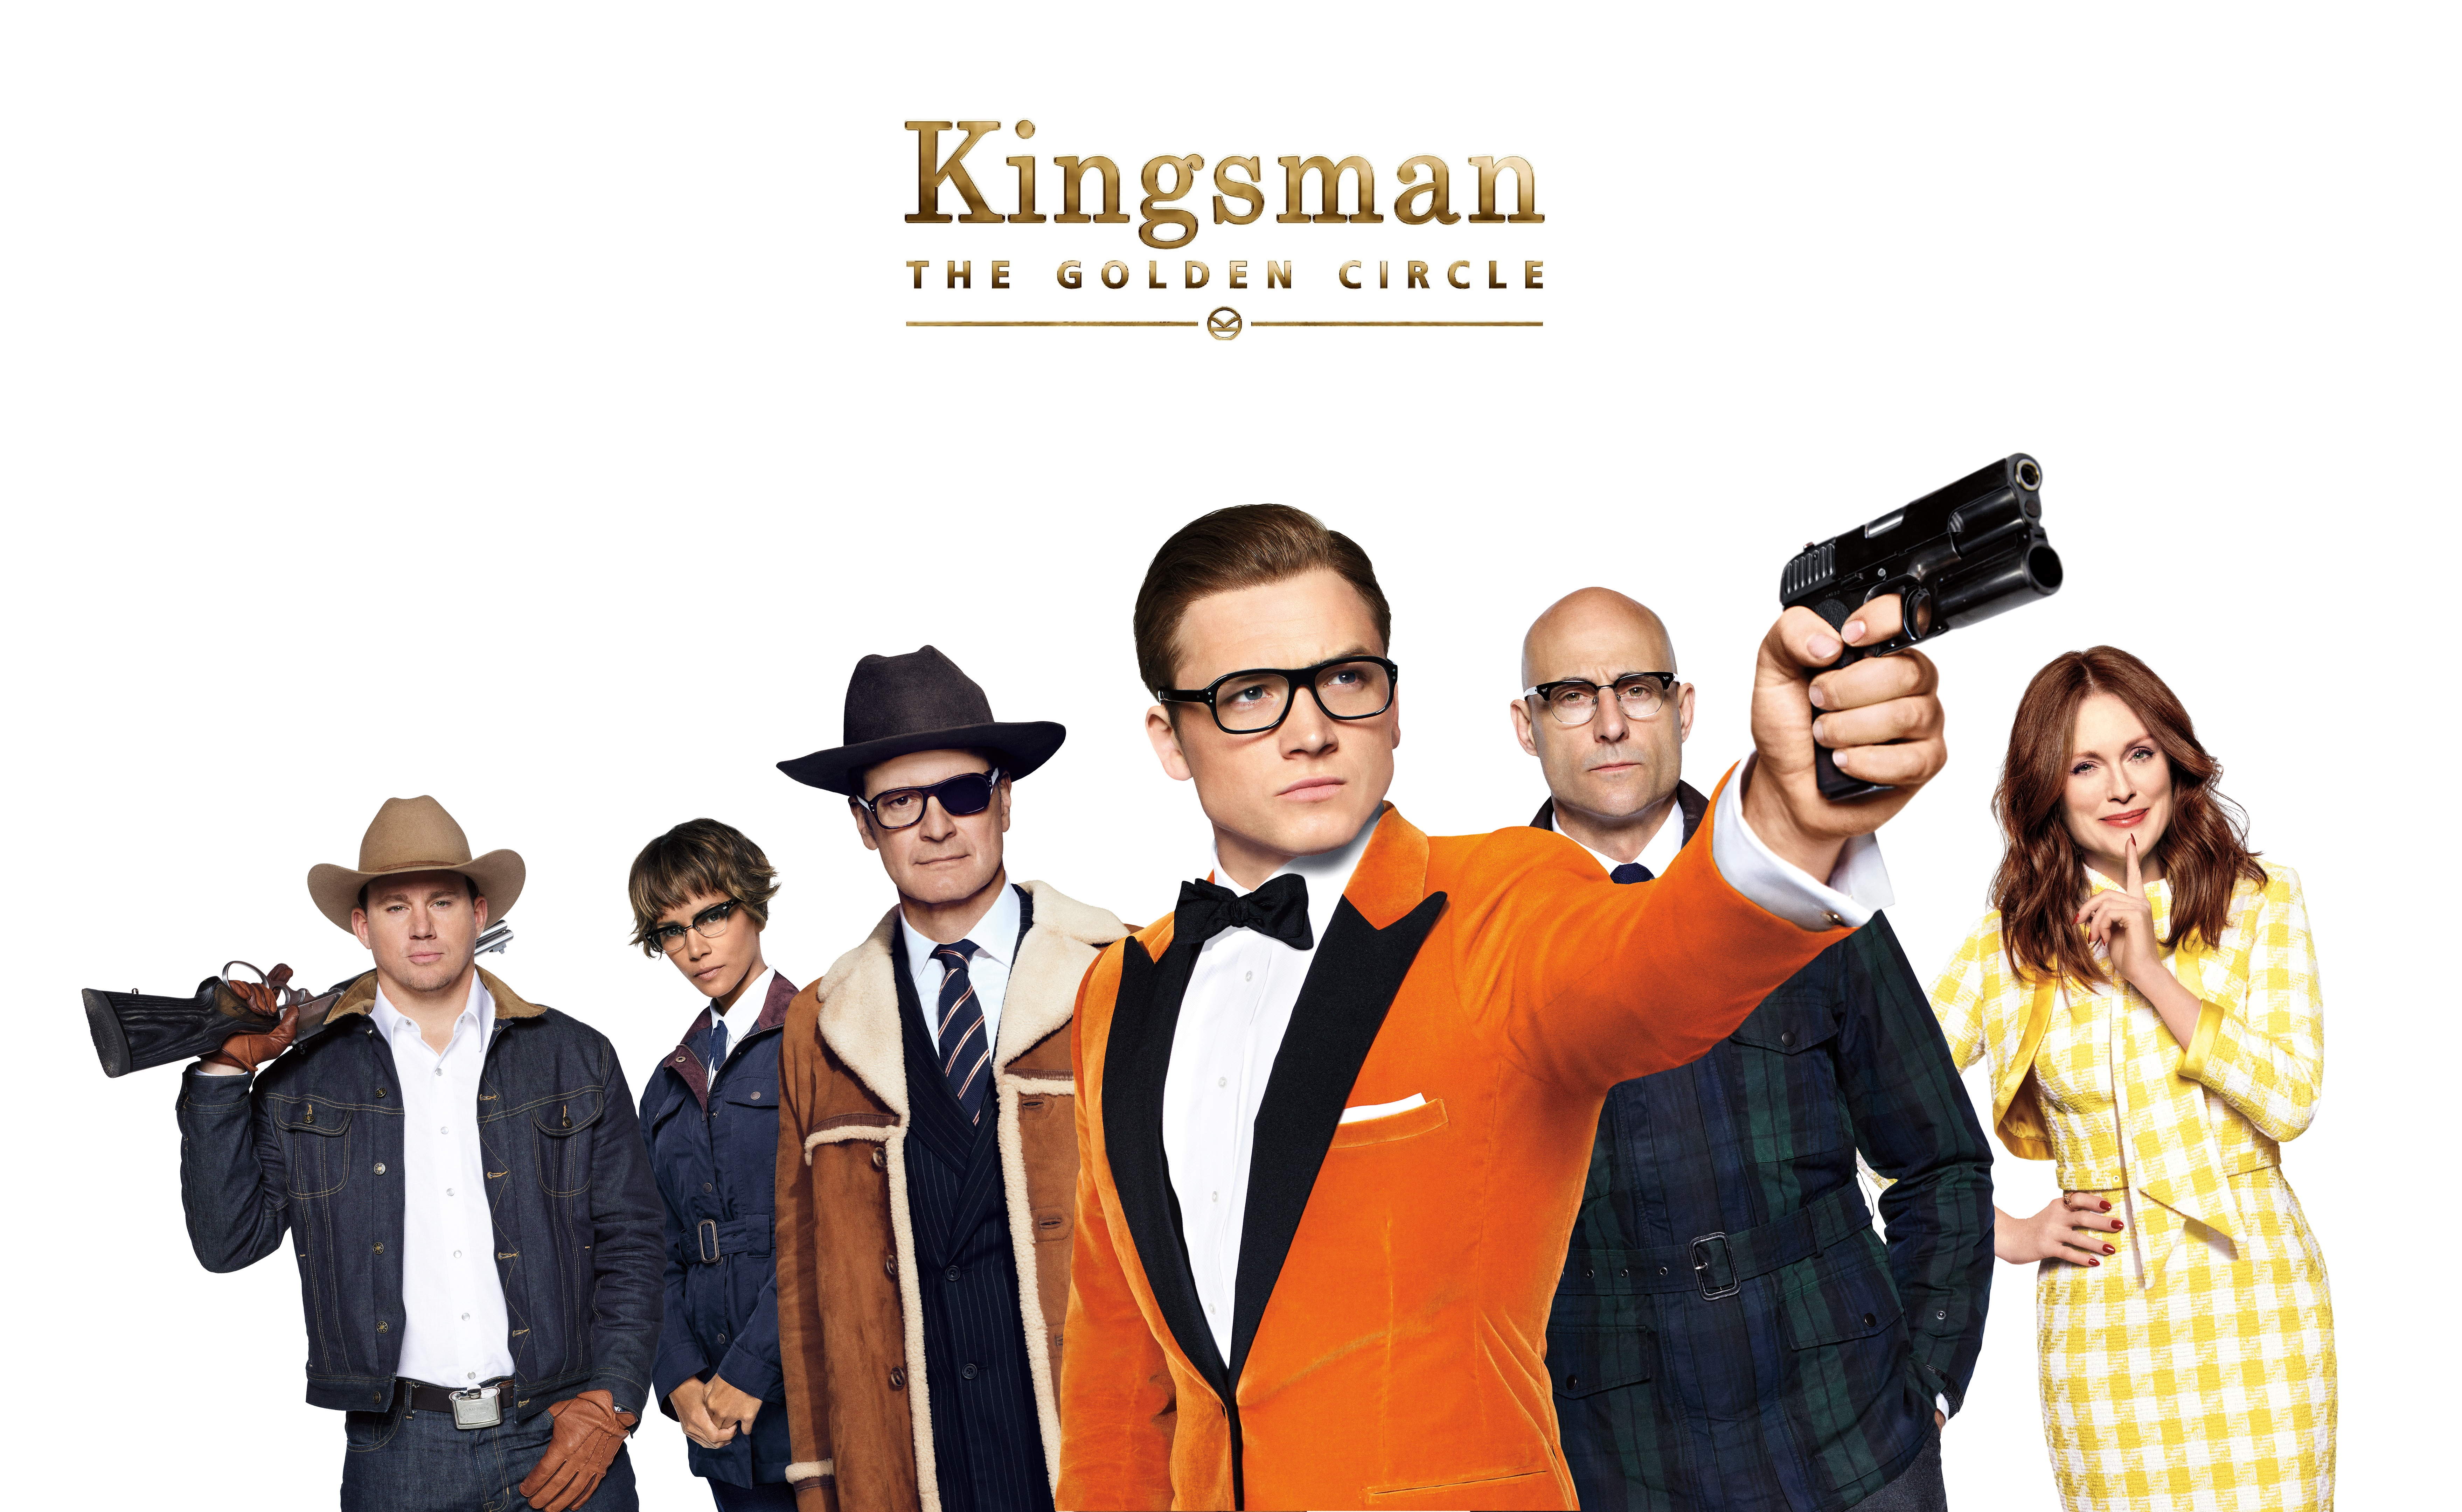 Kingsman The Golden Circle Wallpaper: Kingsman: The Golden Circle Cast